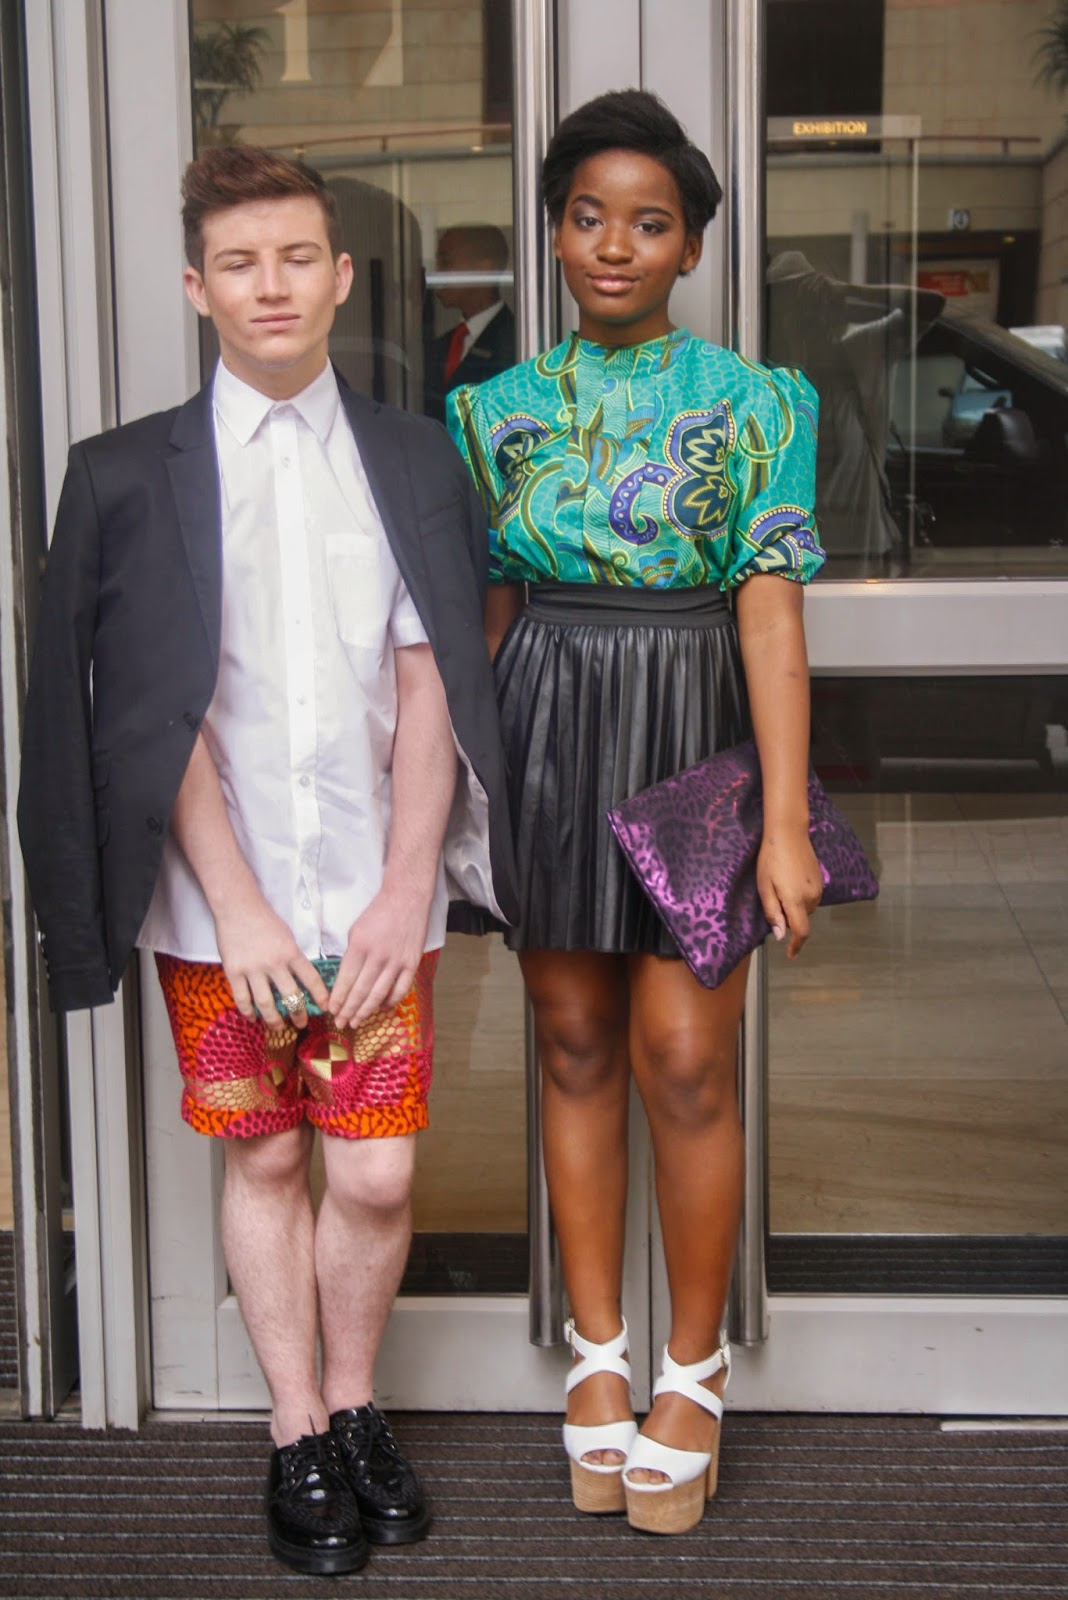 josh lubinsky and khensani mohlatlole dressed in david tlale